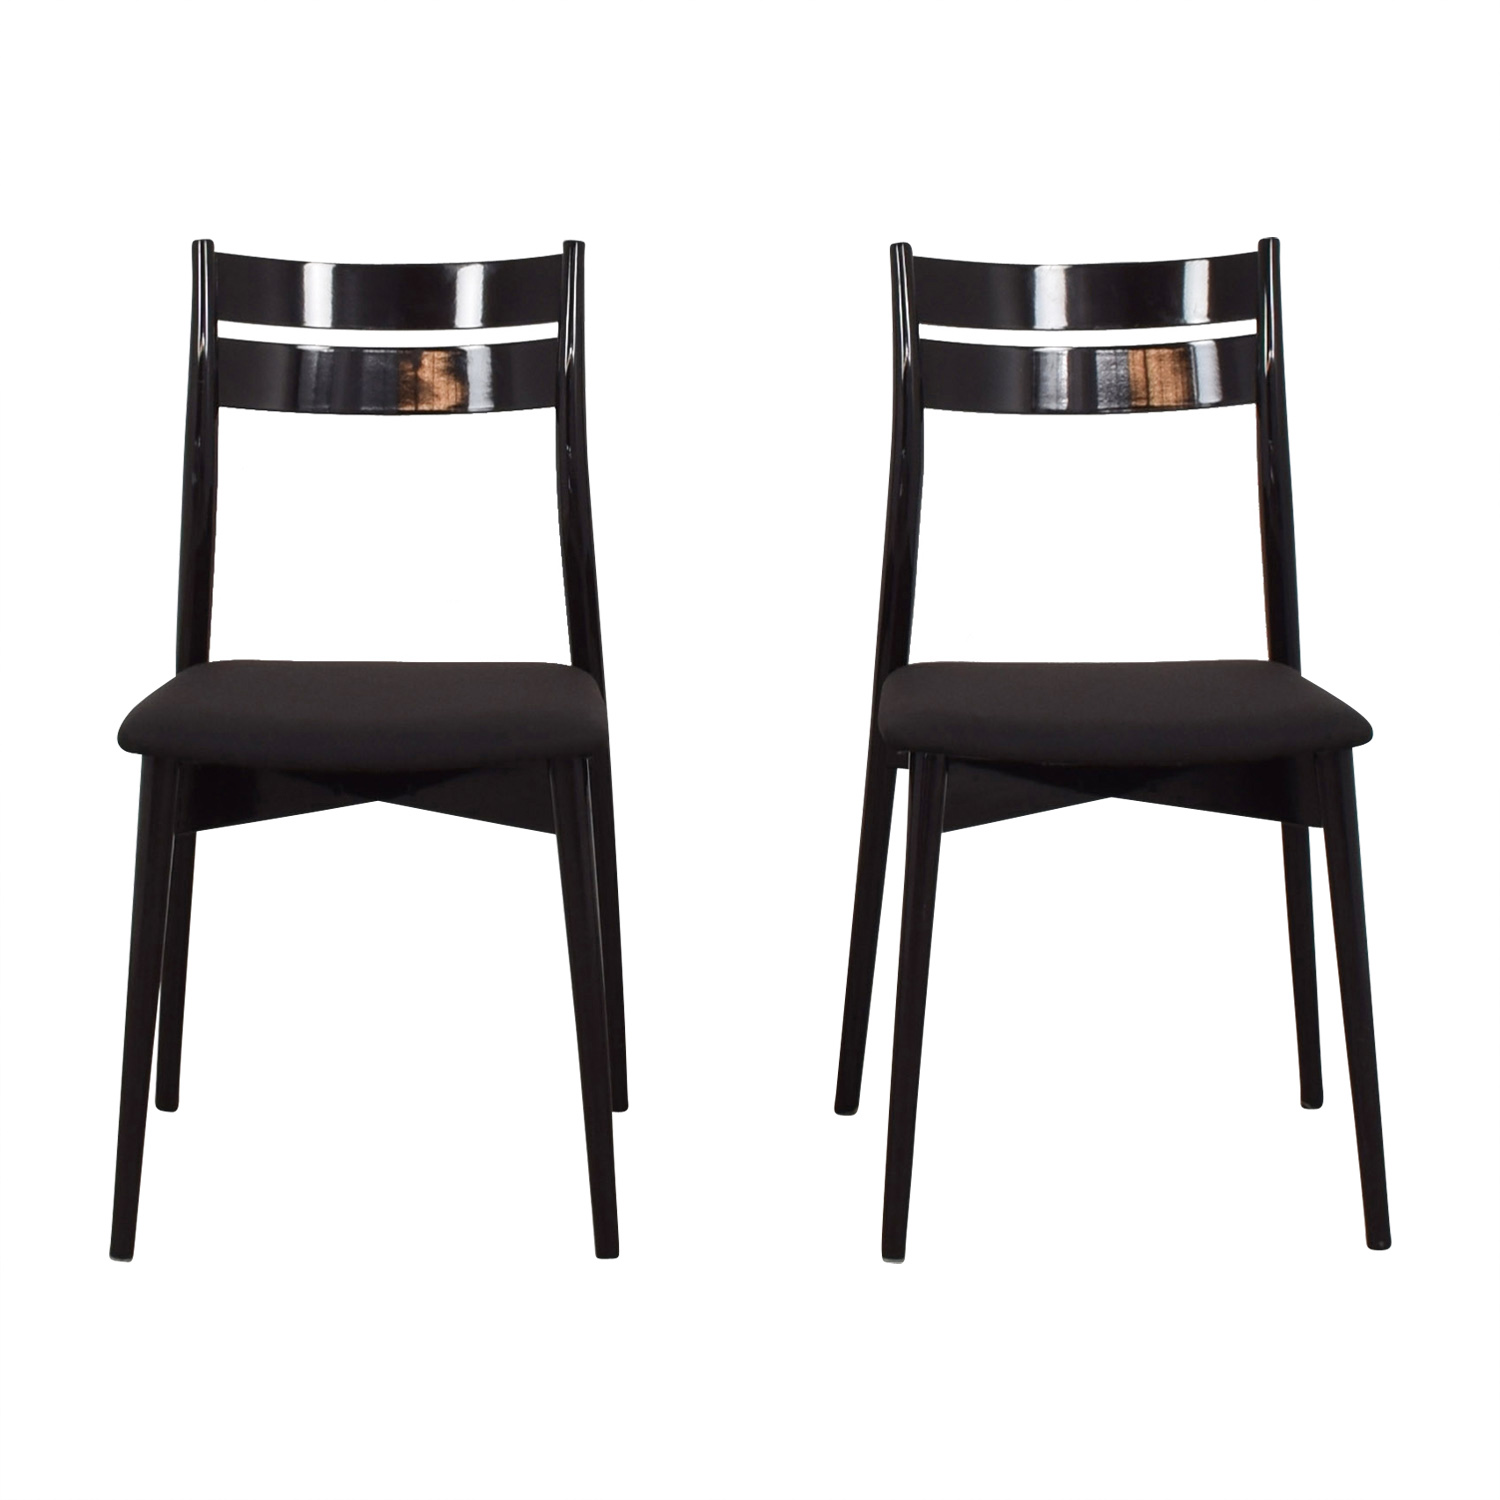 Calligaris Black Dining Chairs / Chairs